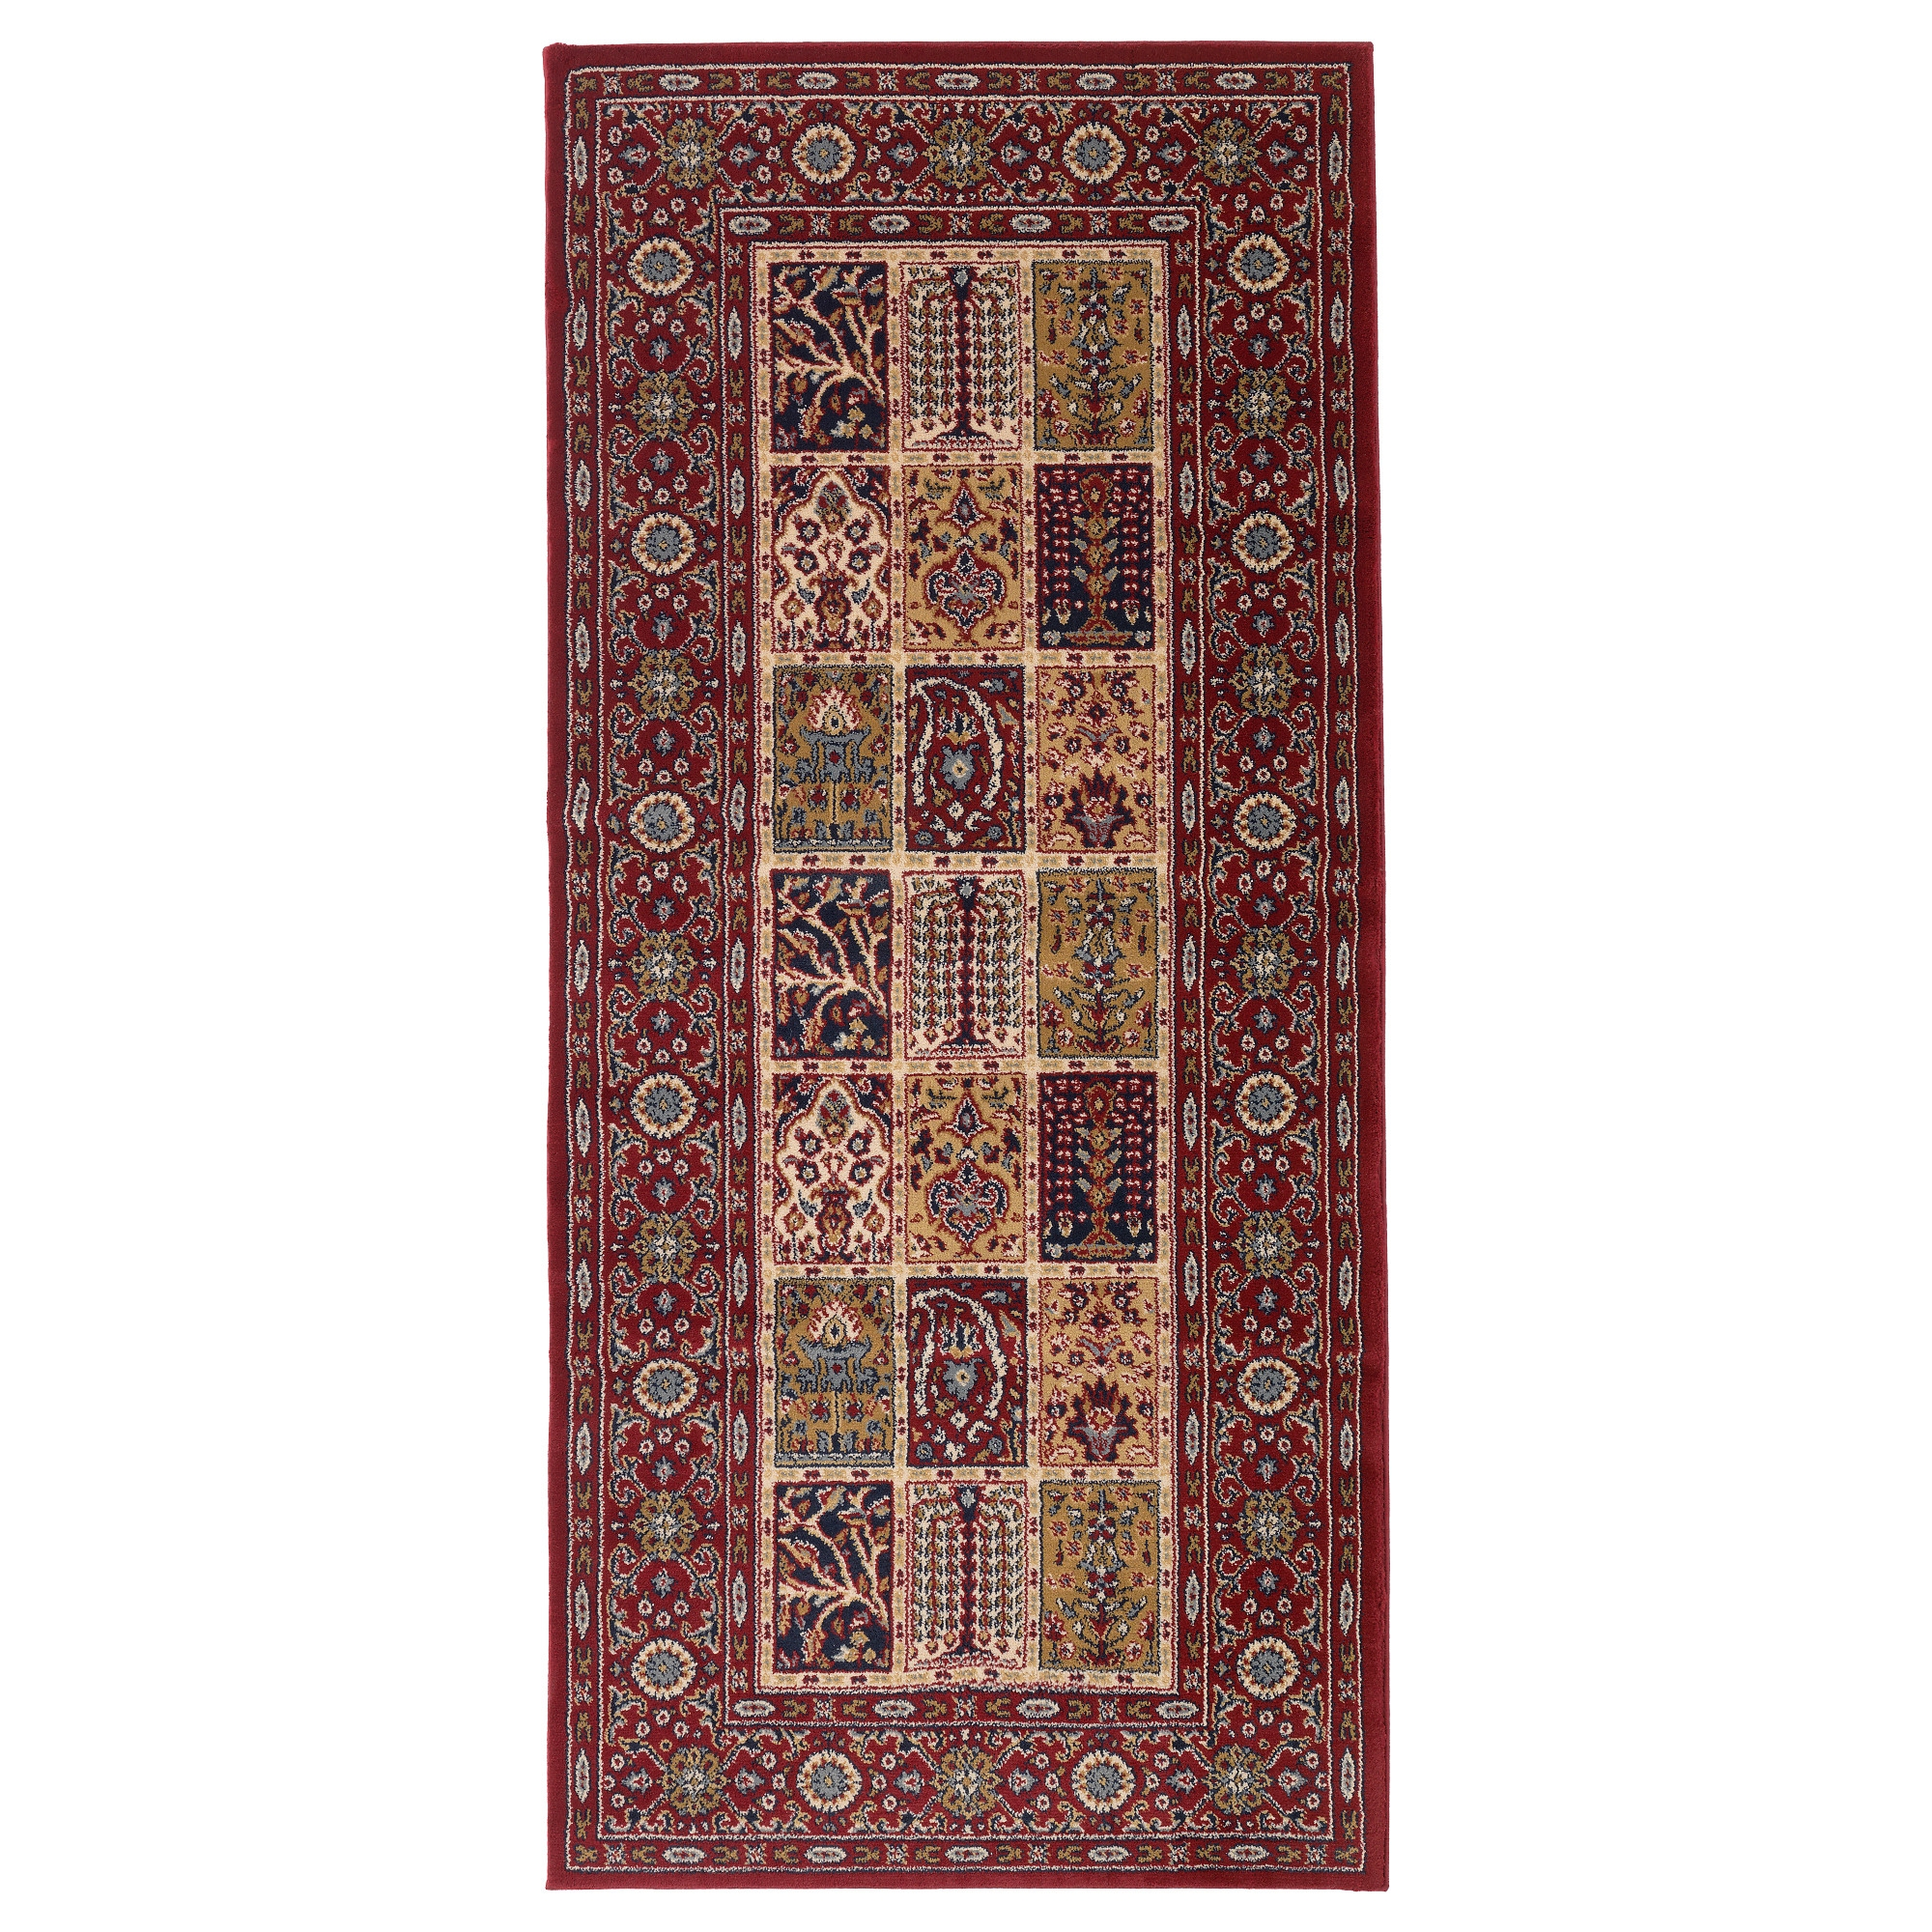 Val Ruta Rug Low Pile Multicolour 80×180 Cm Ikea Within Hallway Runners Ikea (#20 of 20)